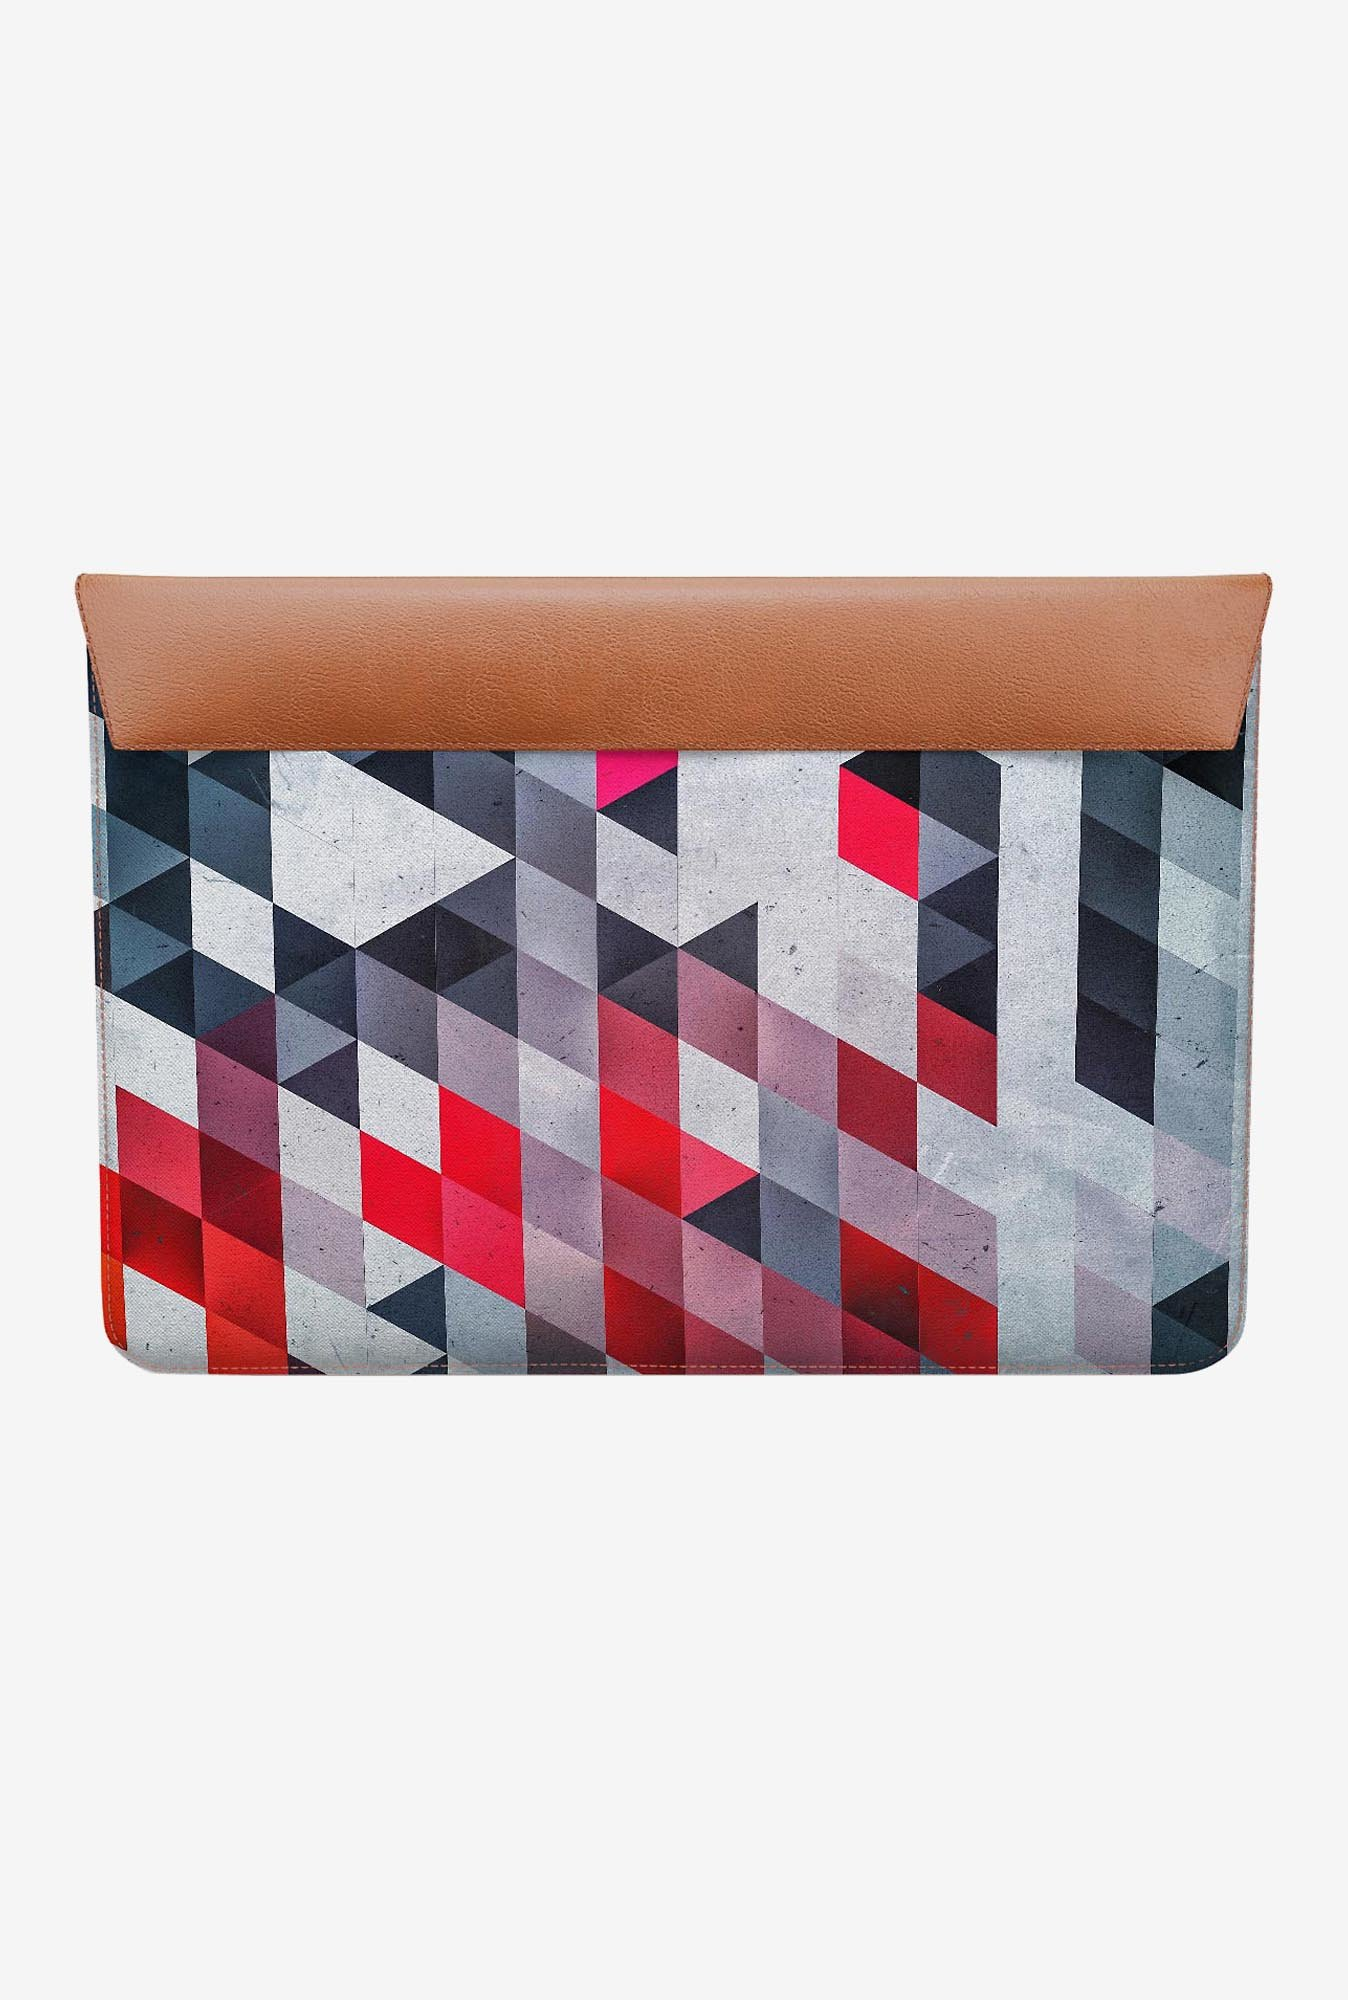 "DailyObjects Hyyldh Xhyymwy Macbook Air 11"" Envelope Sleeve"